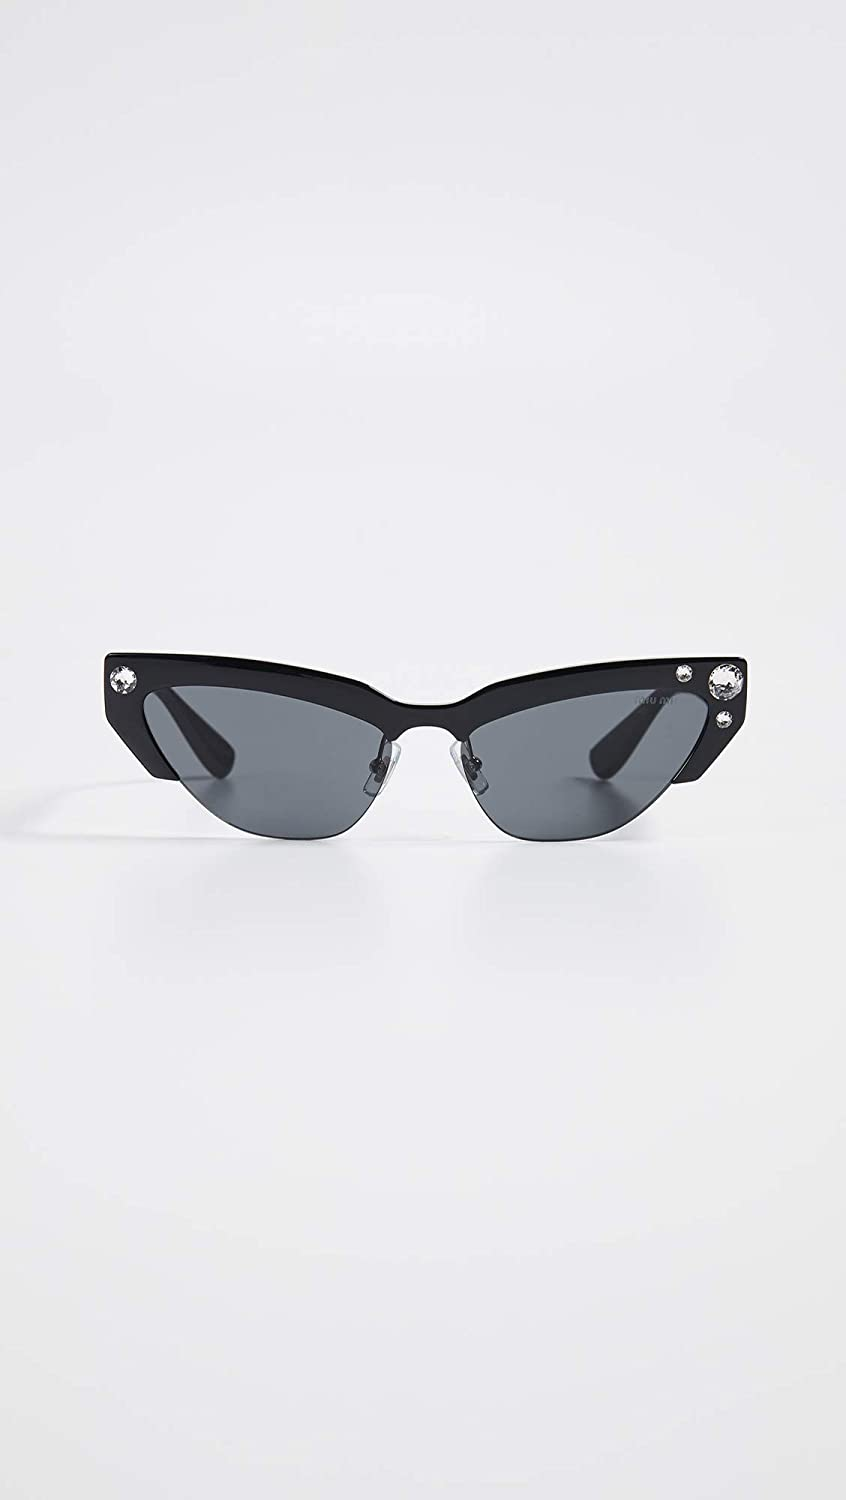 Amazon.com: Miu Miu Womens Narrow Cat Eye Sunglasses, Black ...